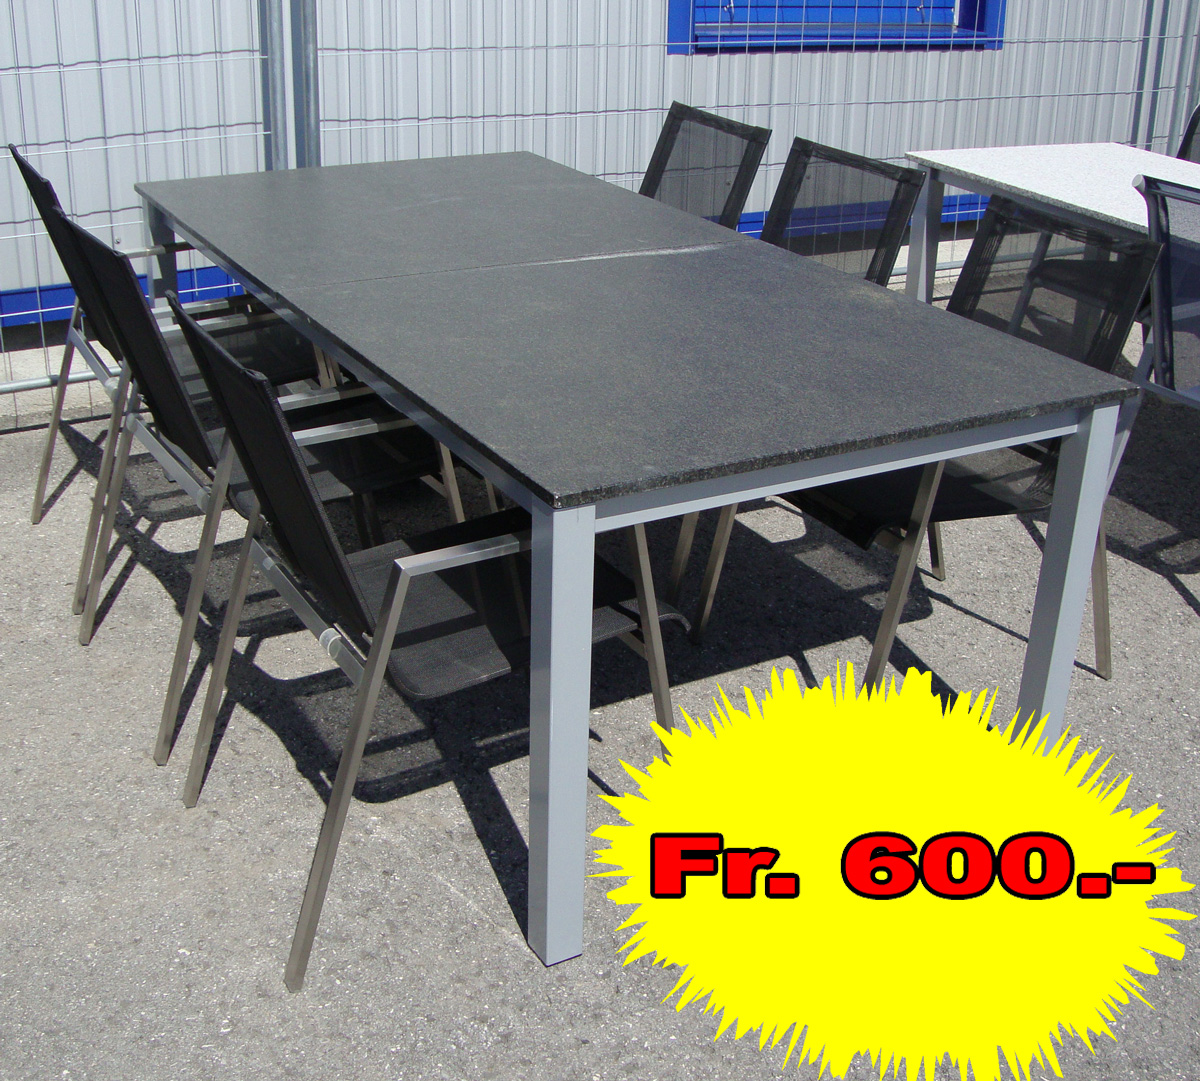 Granittisch Super Gunstig Fr 450